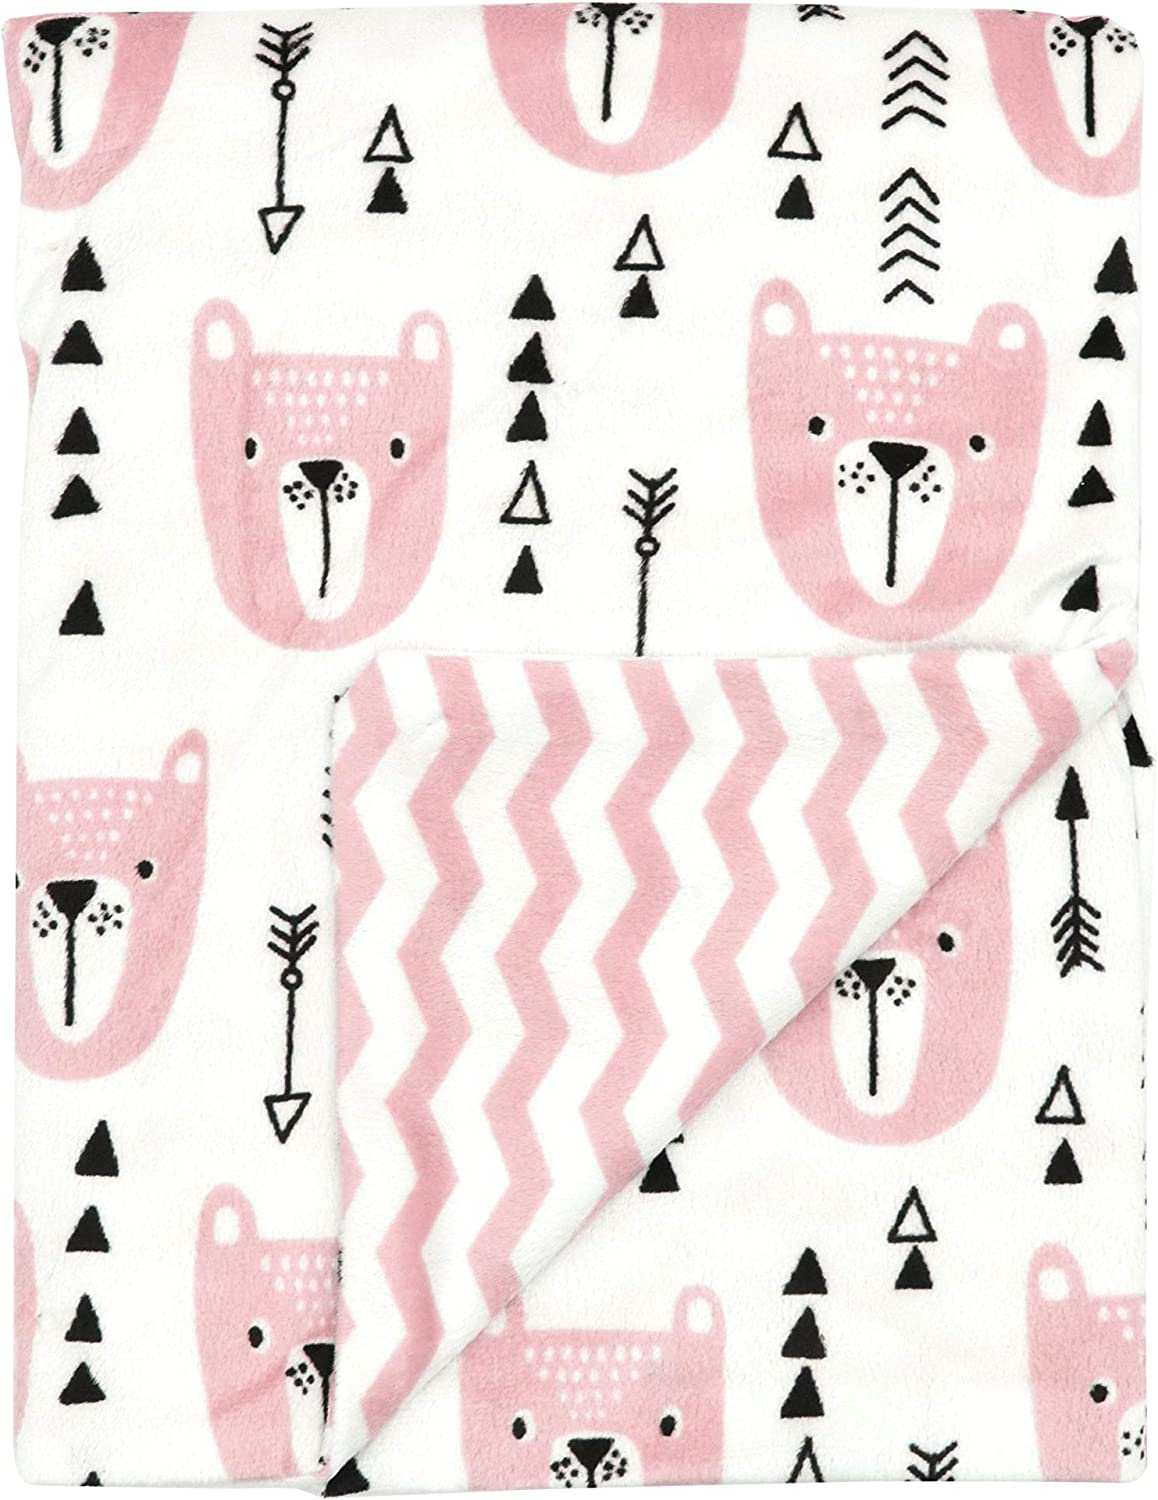 """Large Luxuriously Soft Pink Minky Baby Blanket for Girls with Bears, Arrows and Reversible Chevron Print by Everyday Kids; Toddler and Baby Girl Crib Blanket 30 x 40"""" for Woodland Baby Nursery Decor"""